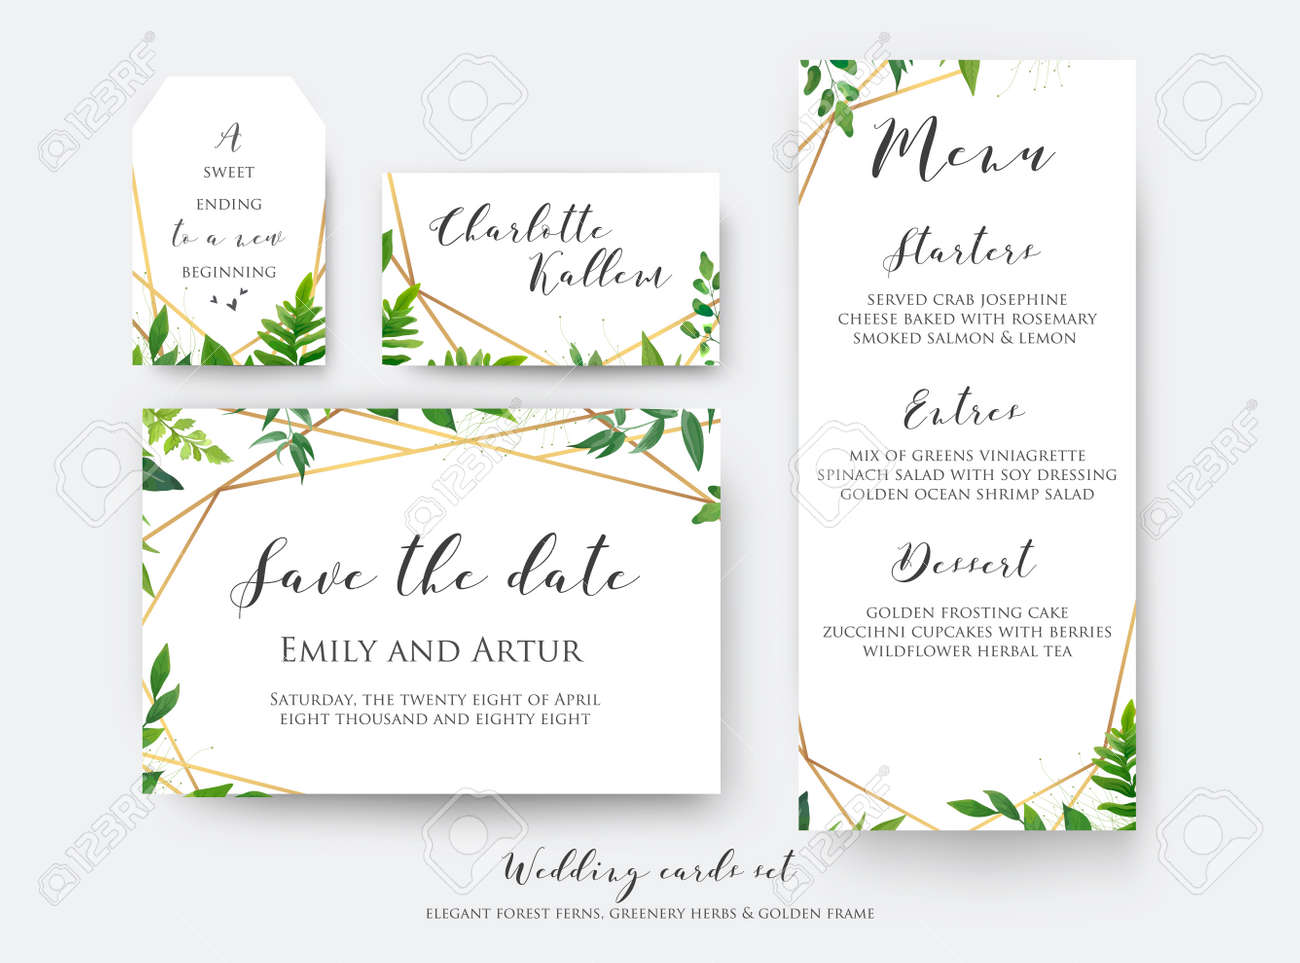 Wedding floral save the date, menu, place card & label template set. Vector modern, botanical card design with green forest fern leaves, greenery herbs border with luxury Geometrical golden decoration - 95558976